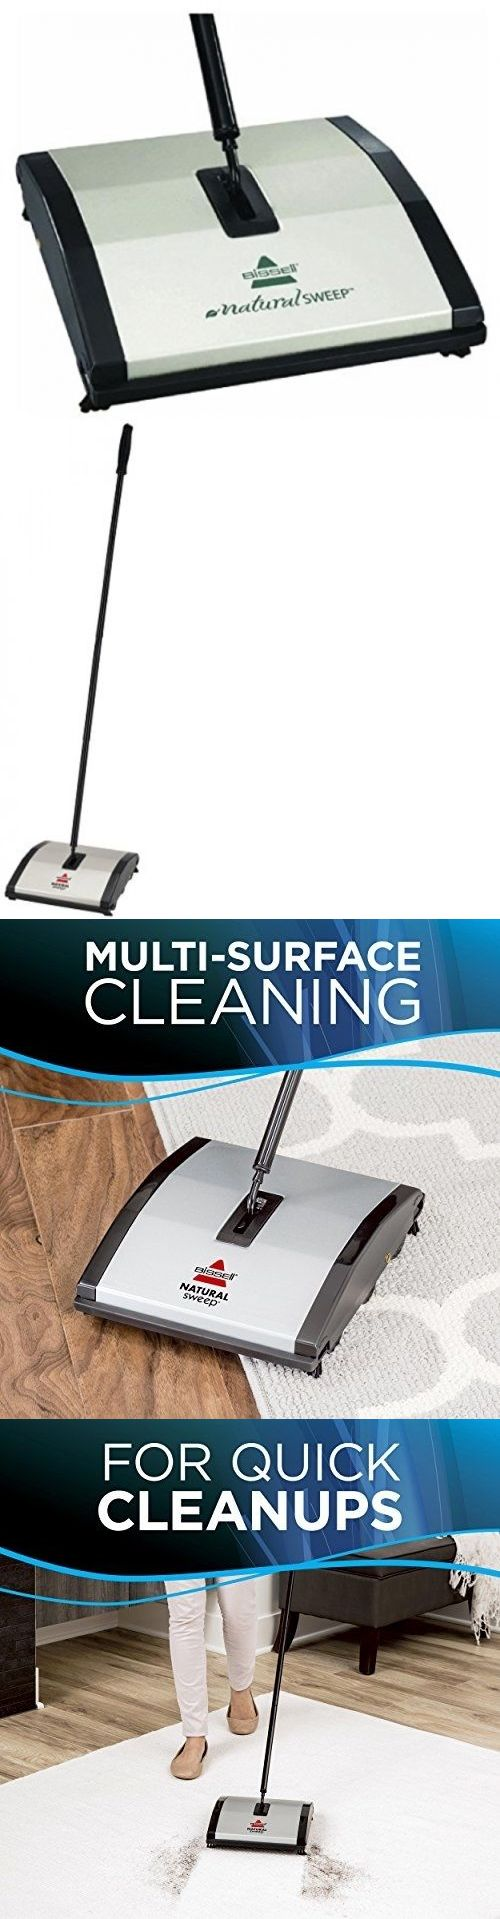 Carpet and Floor Sweepers 79657: Fuller Brush Commercial Non Electric Carpet Sweeper Floor Cordless Bissell -> BUY IT NOW ONLY: $36.6 on eBay!